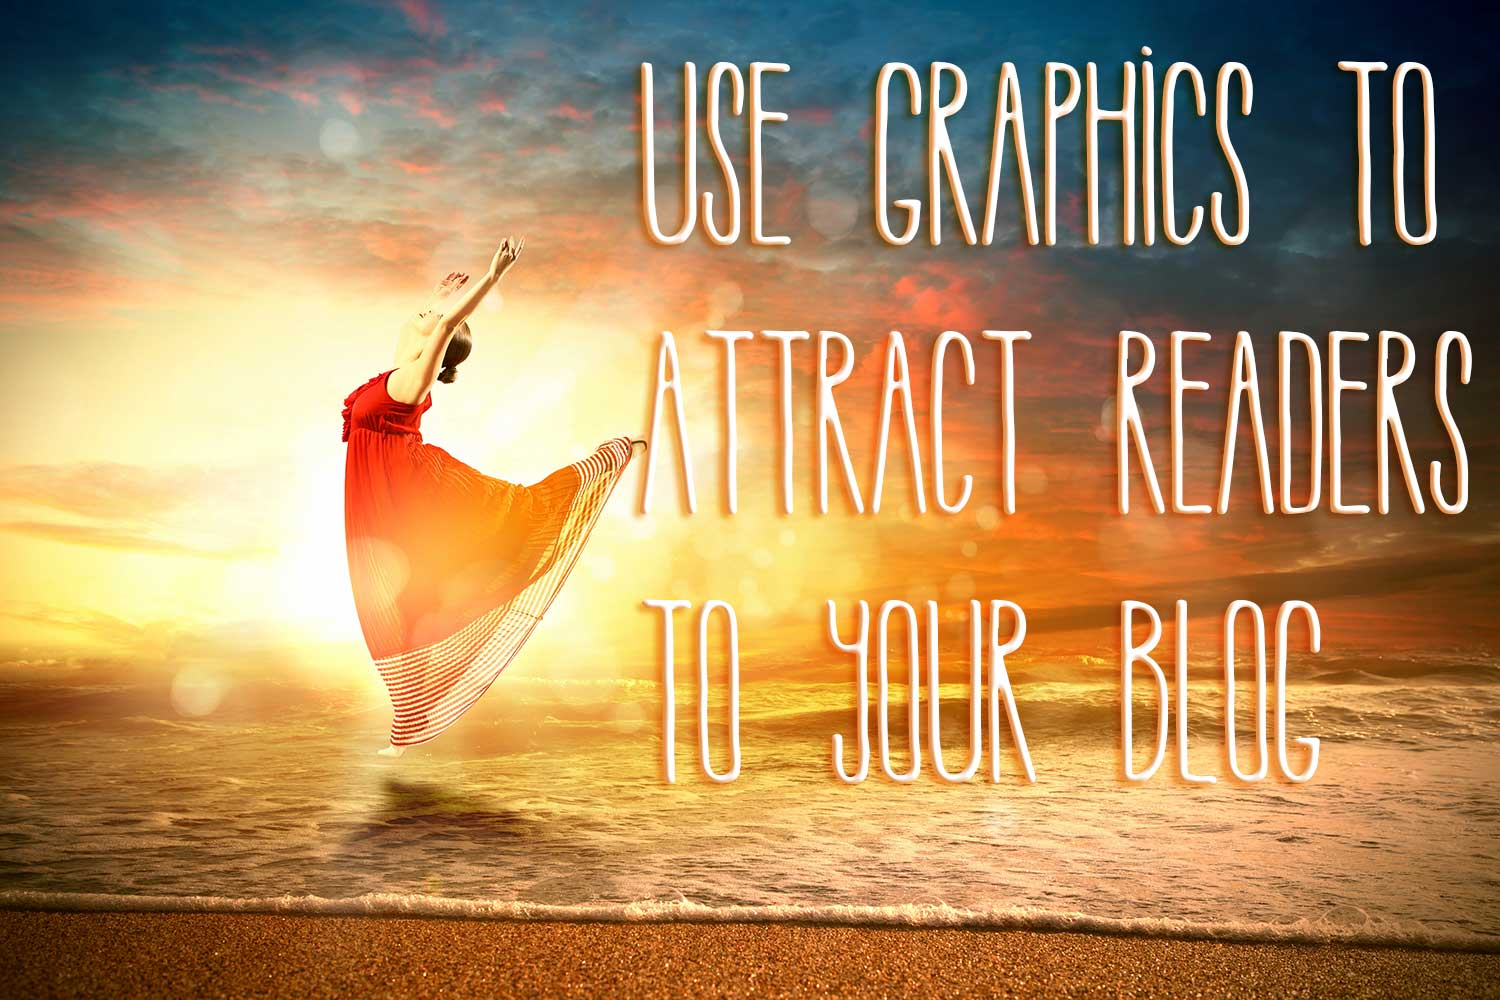 Attention-grabbing graphics bring readers to your posts.